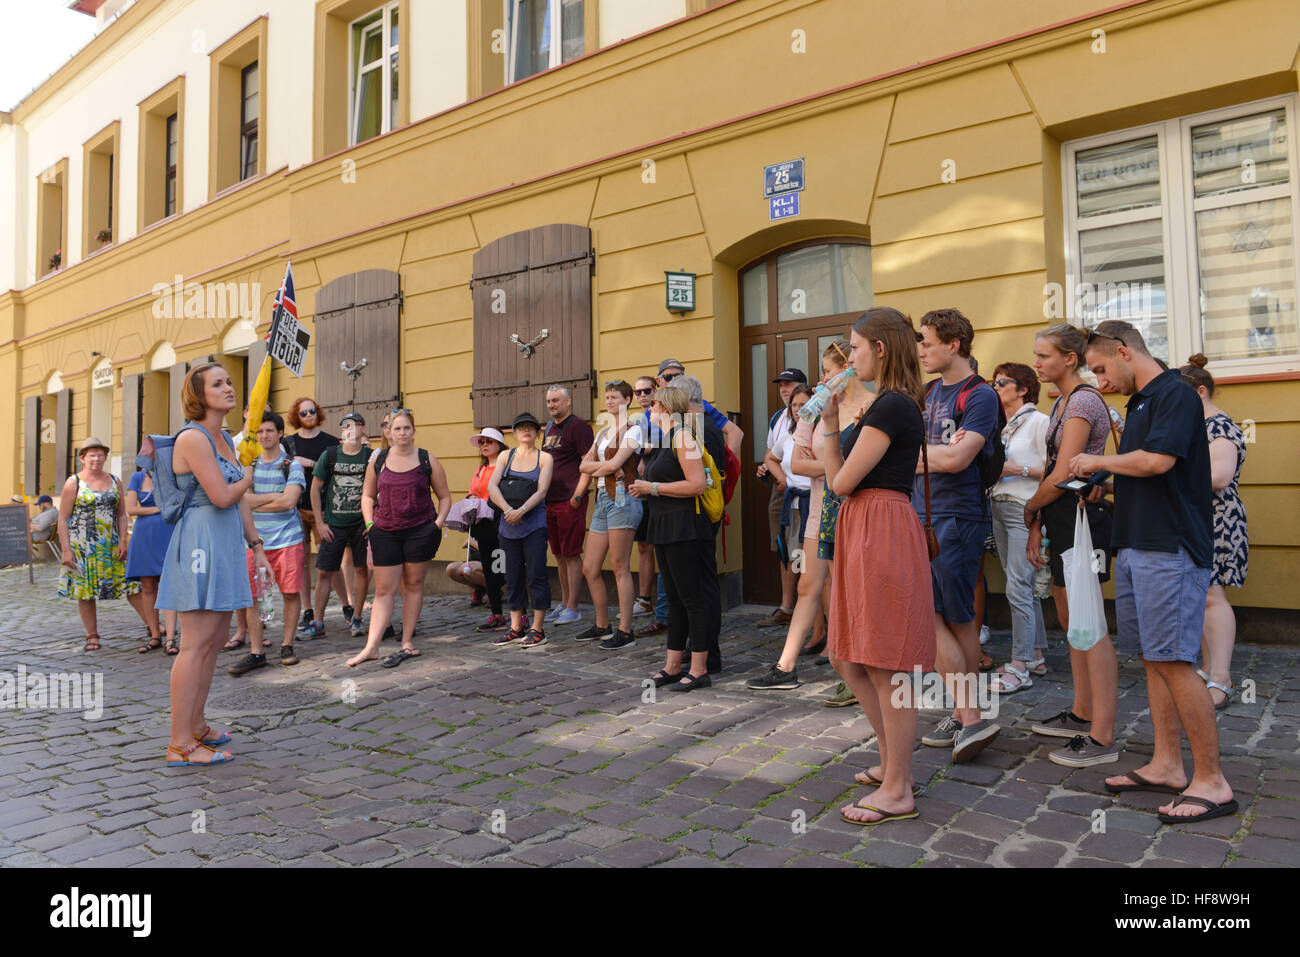 Stadtfuehrung, Free Walking Tour, Kazimierz, Krakau, Polen, Town guidance, Free Walking tour, Cracow, Poland - Stock Image